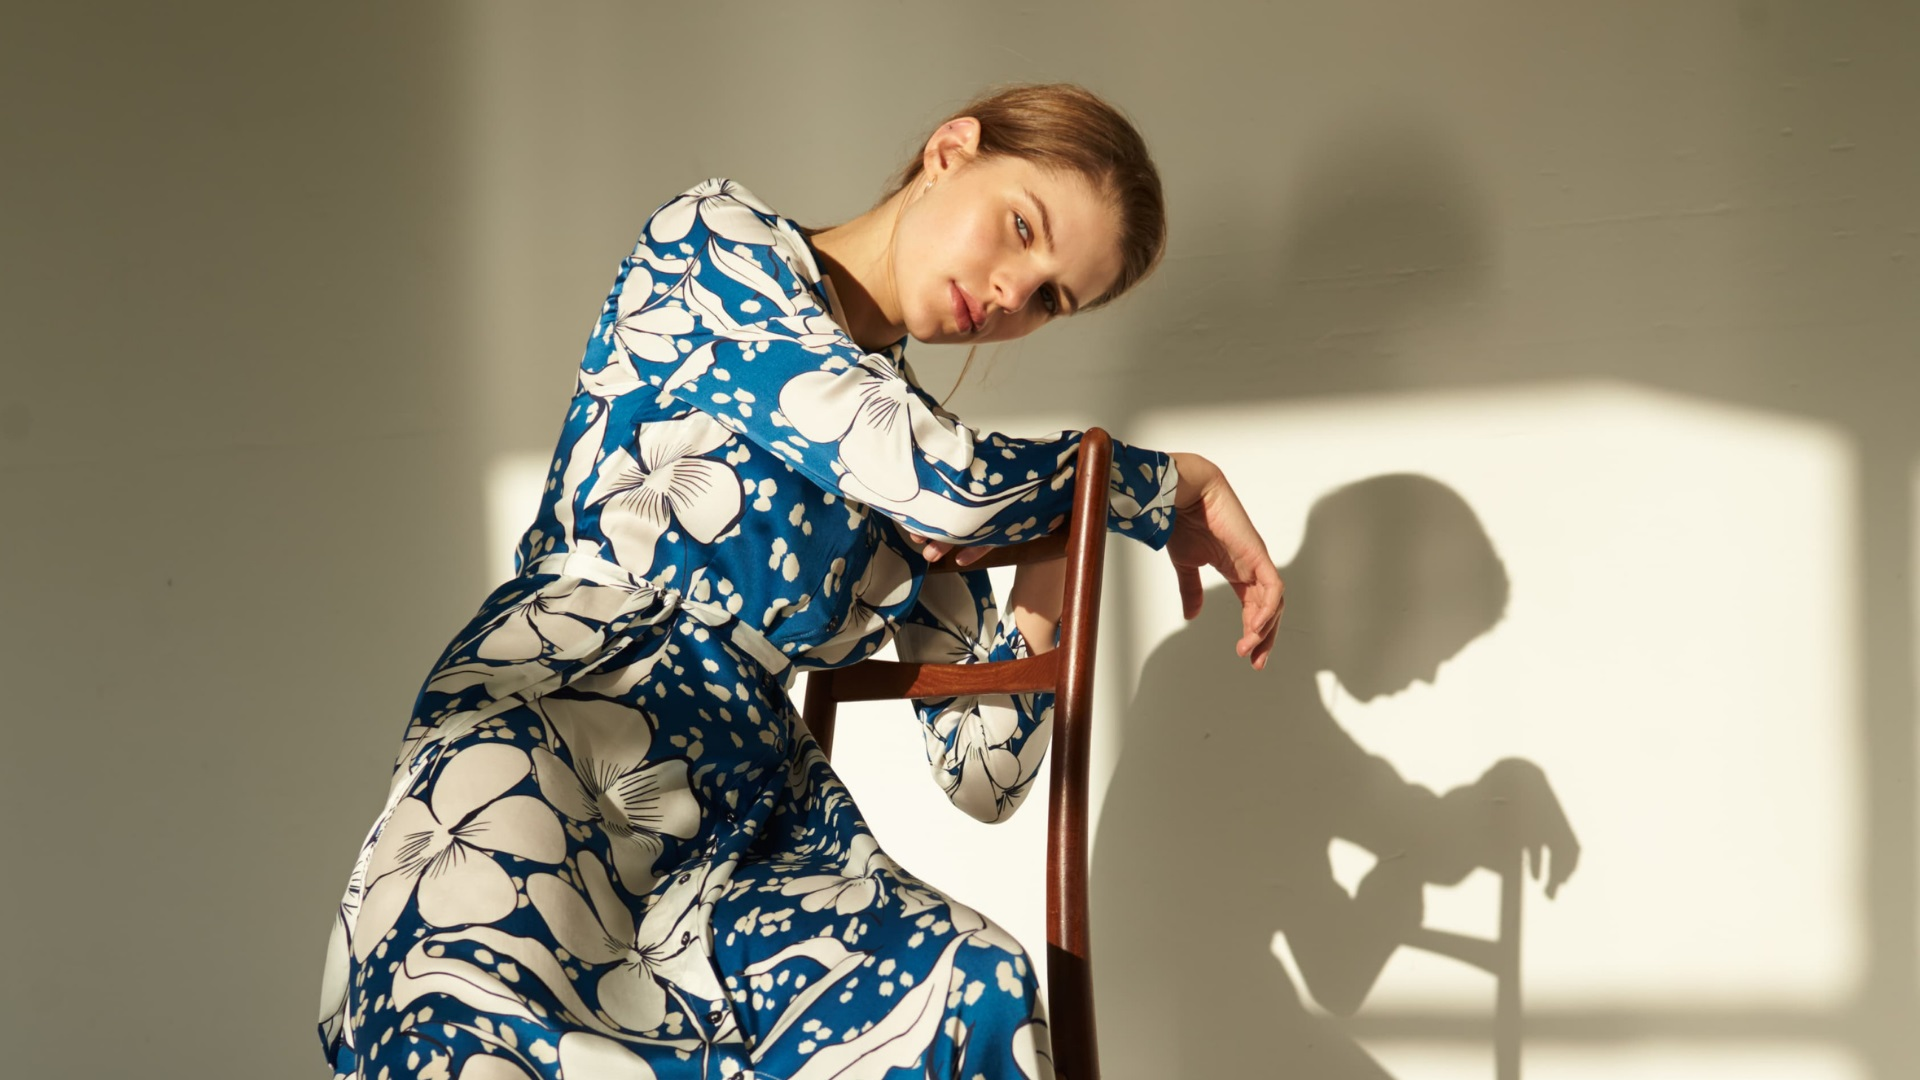 Woman with a blue printed dress sitting on a chair